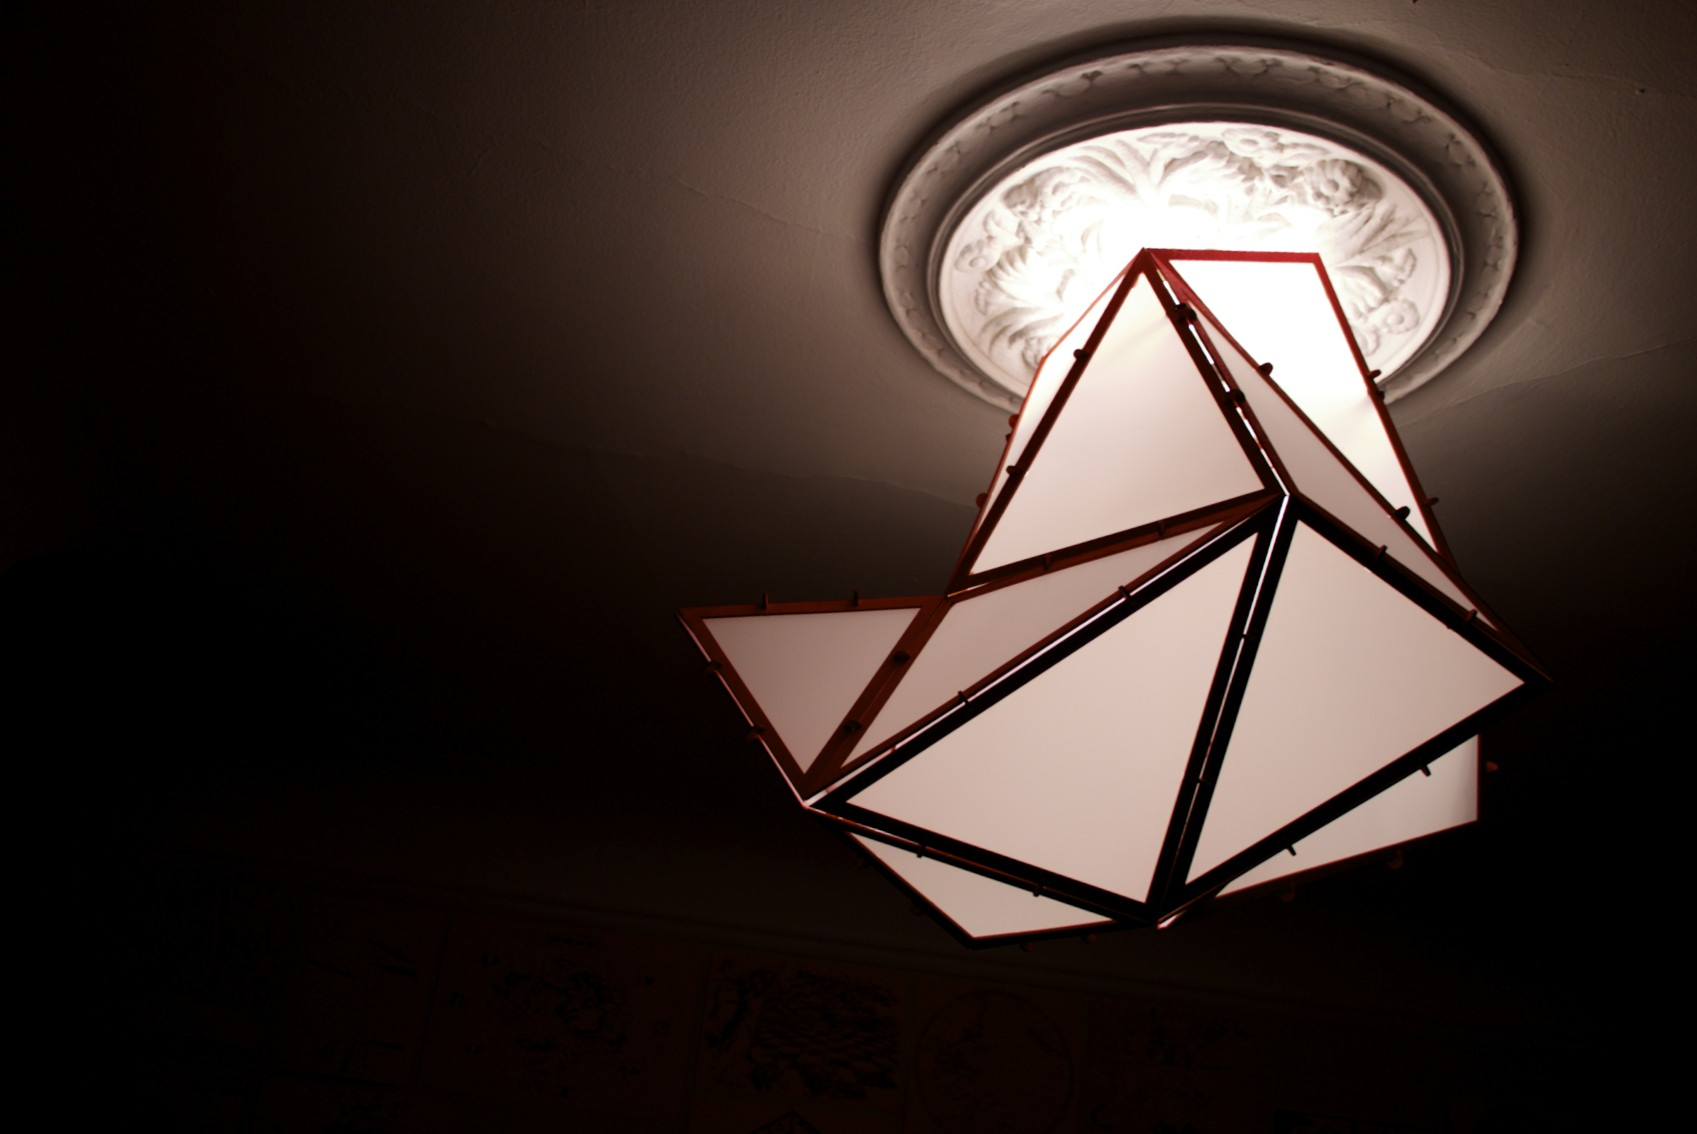 Picture of Triangulated Lamps